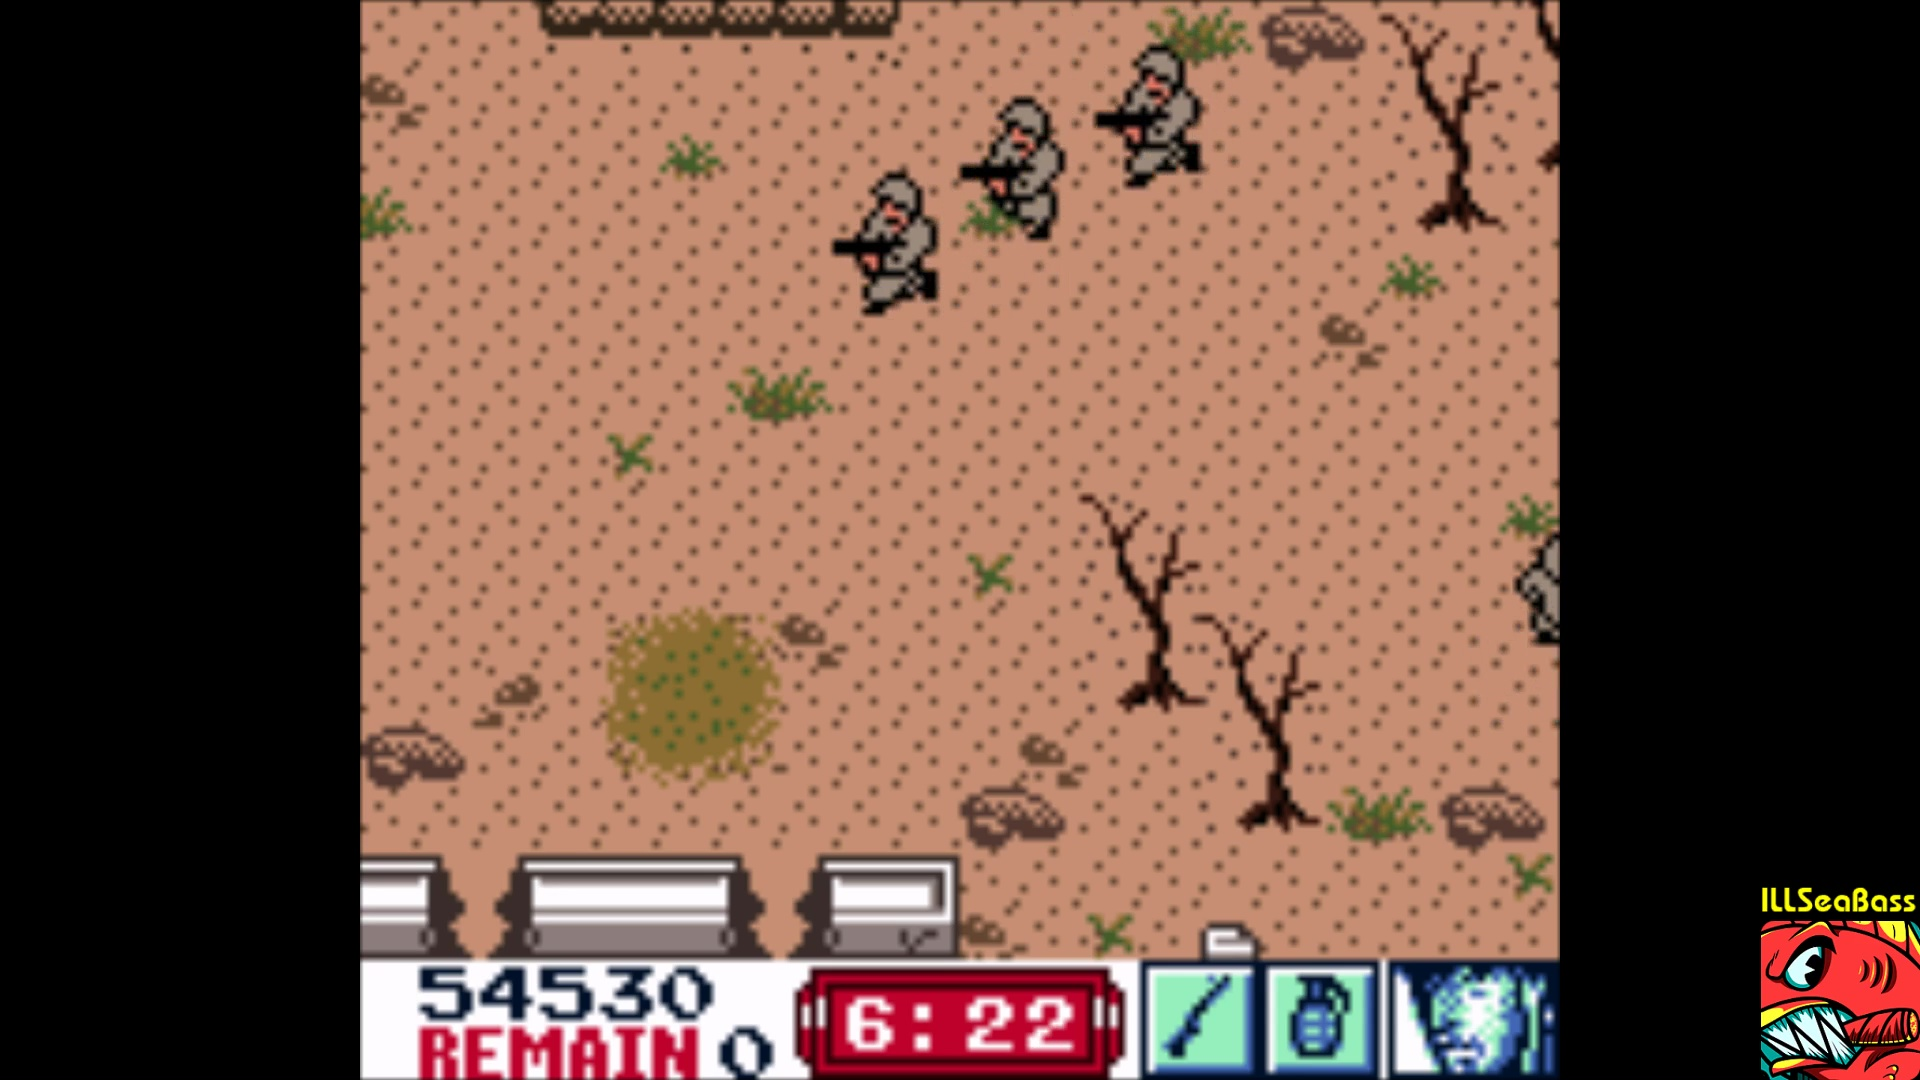 ILLSeaBass: Front Line: The Next Mission (Game Boy Color Emulated) 54,530 points on 2018-01-20 00:57:26